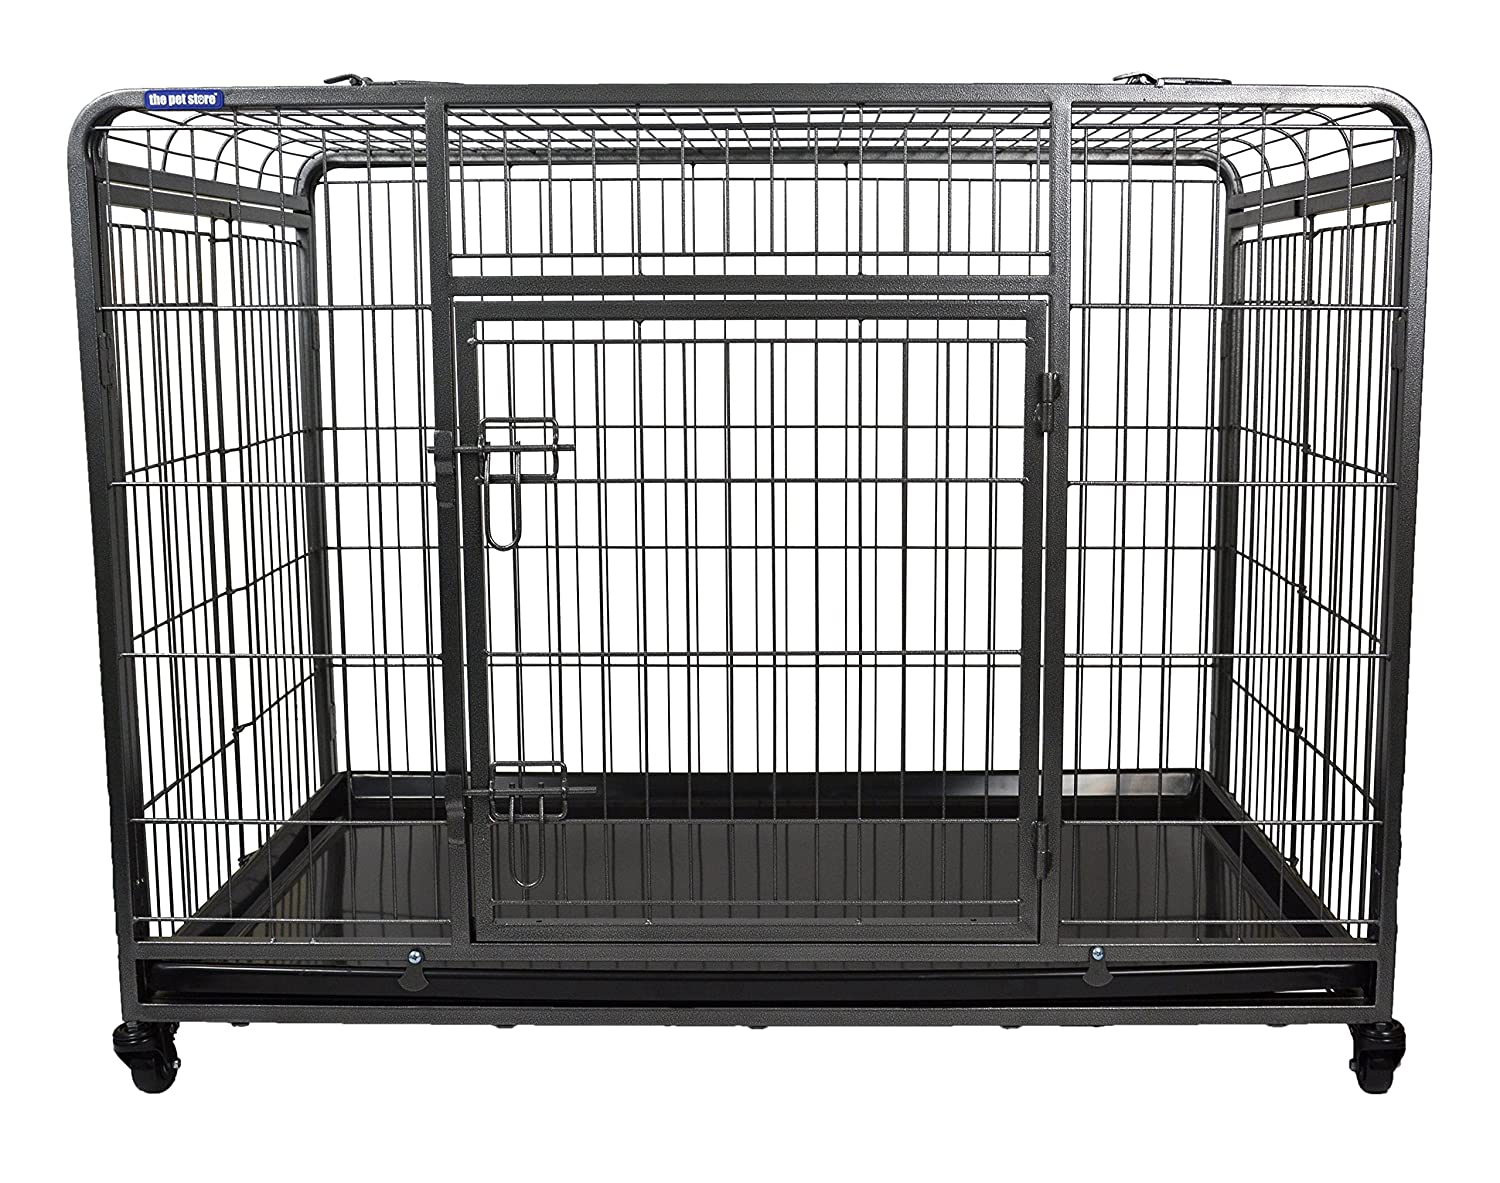 Large The Pet Store Premium Dog Crate with Lockable, Removable Nylon Wheels, Large